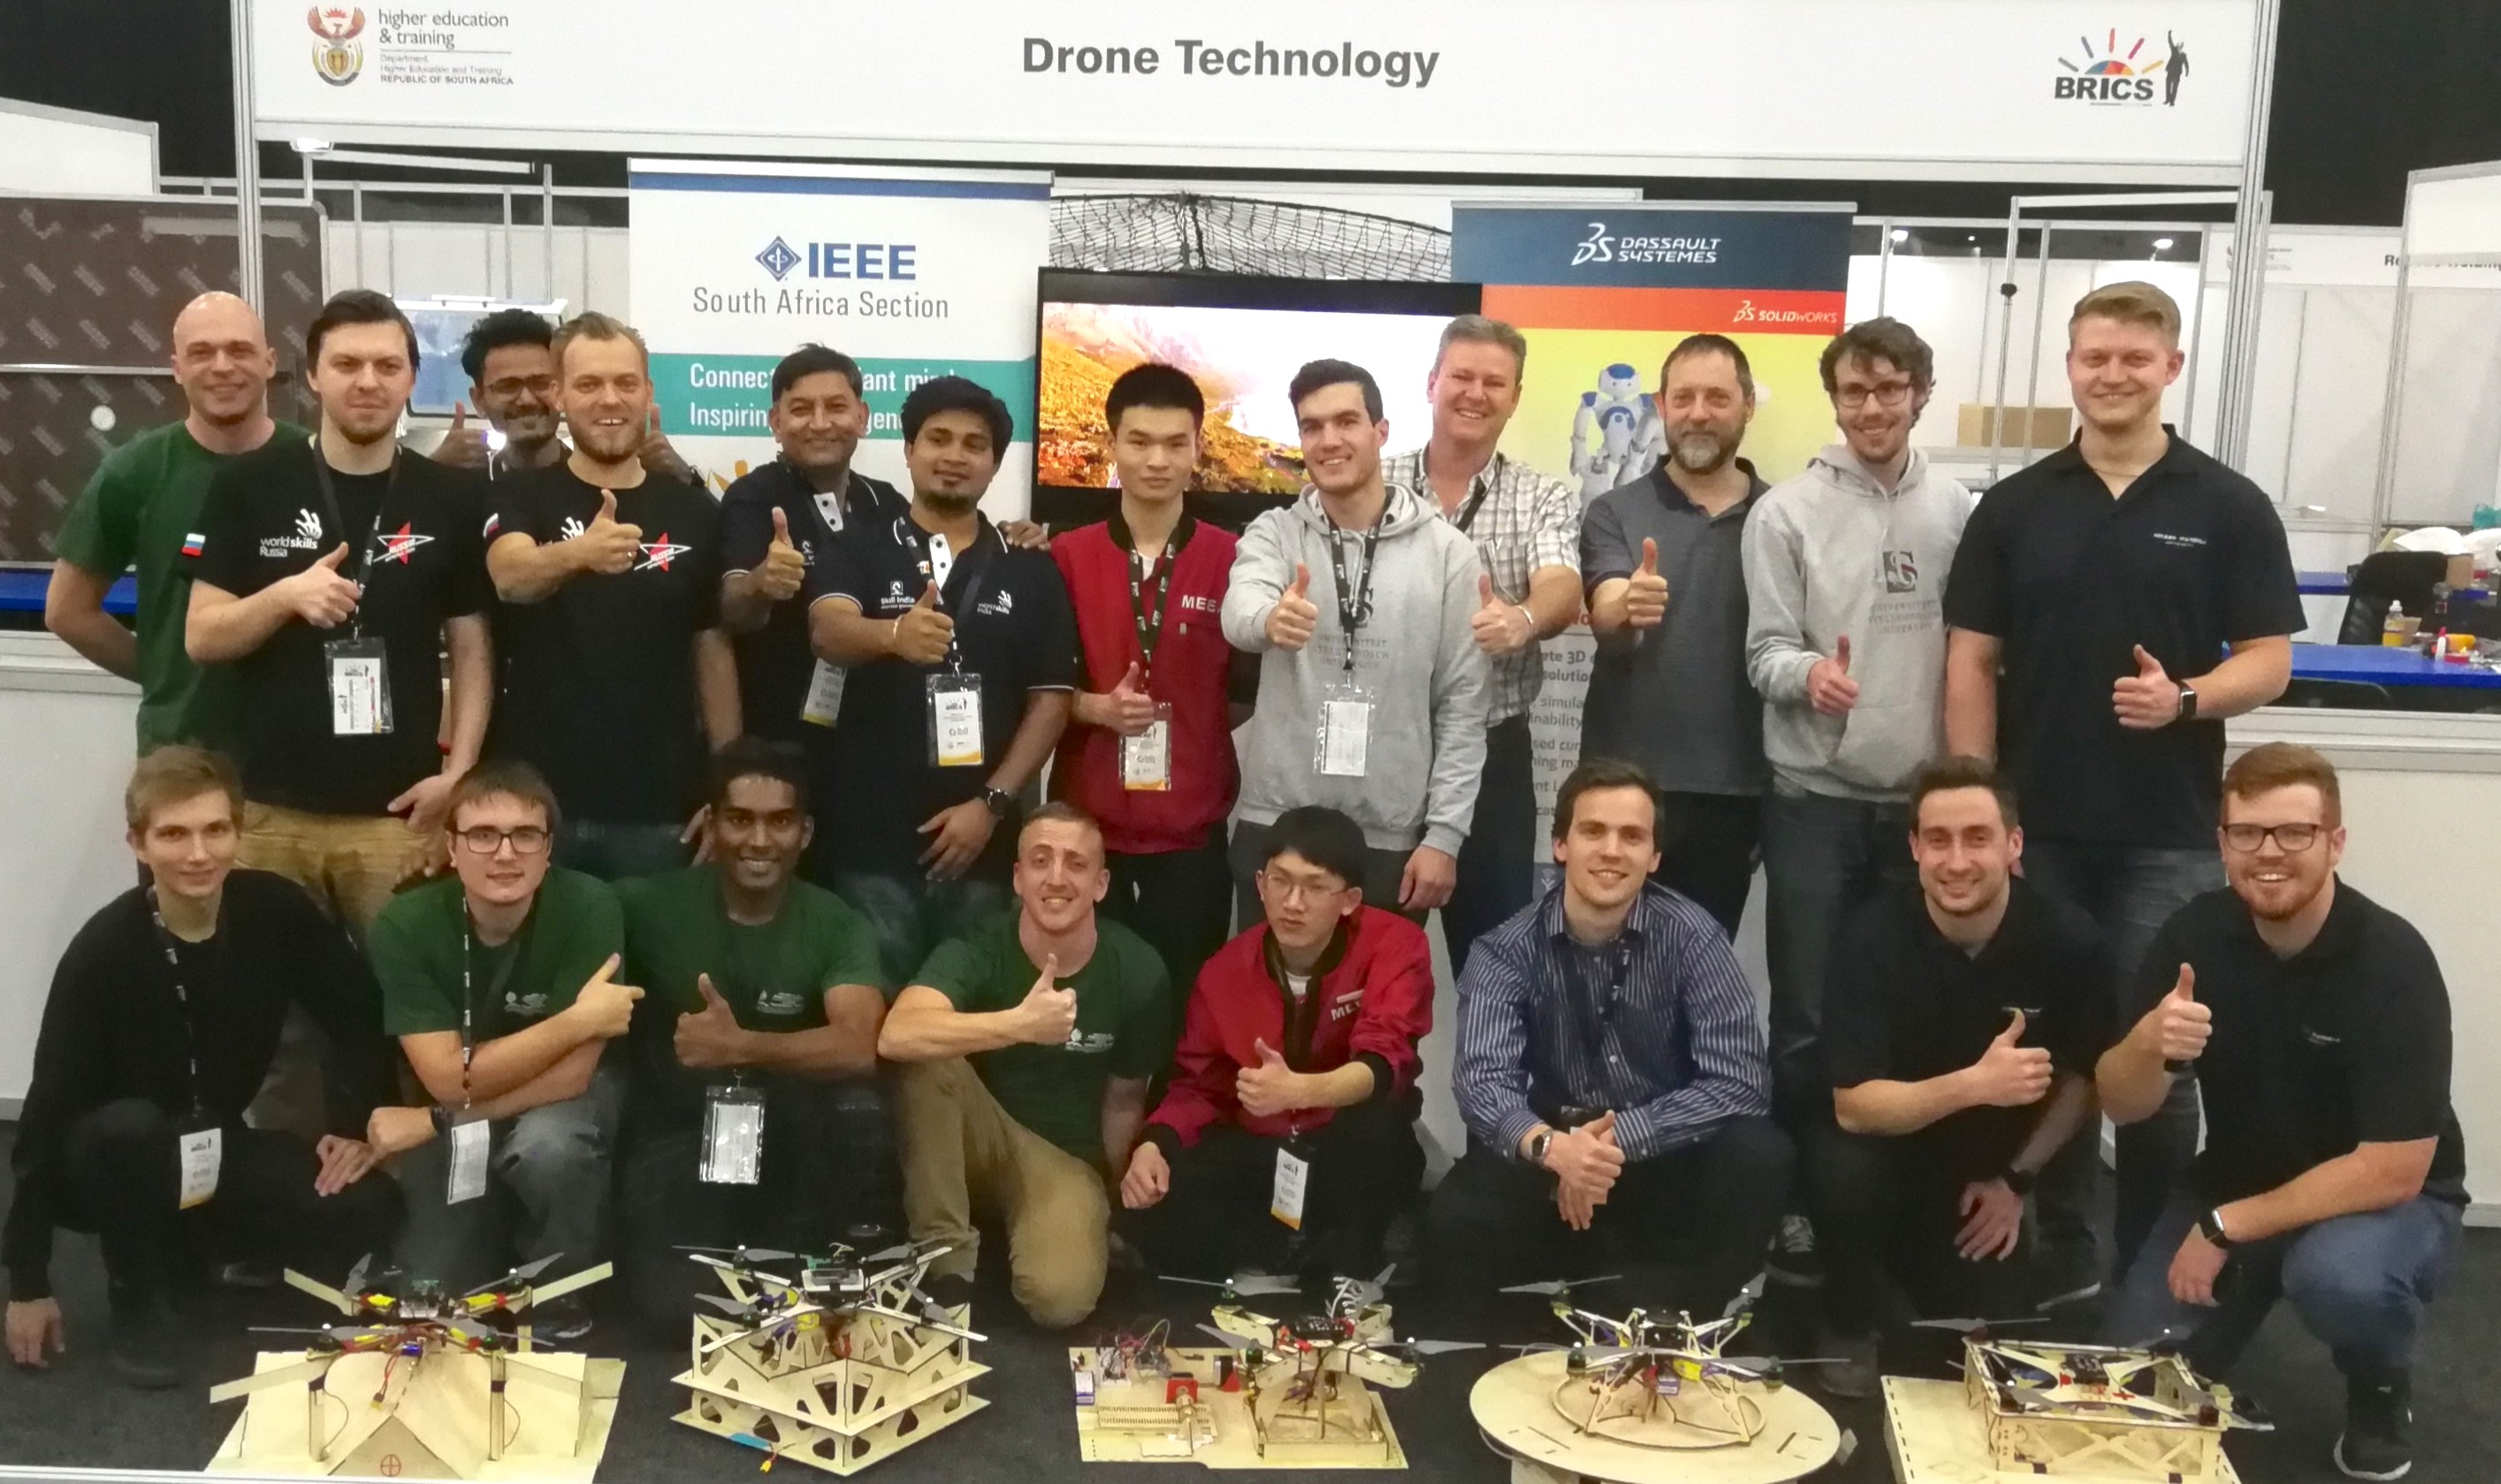 The five teams with their drones.